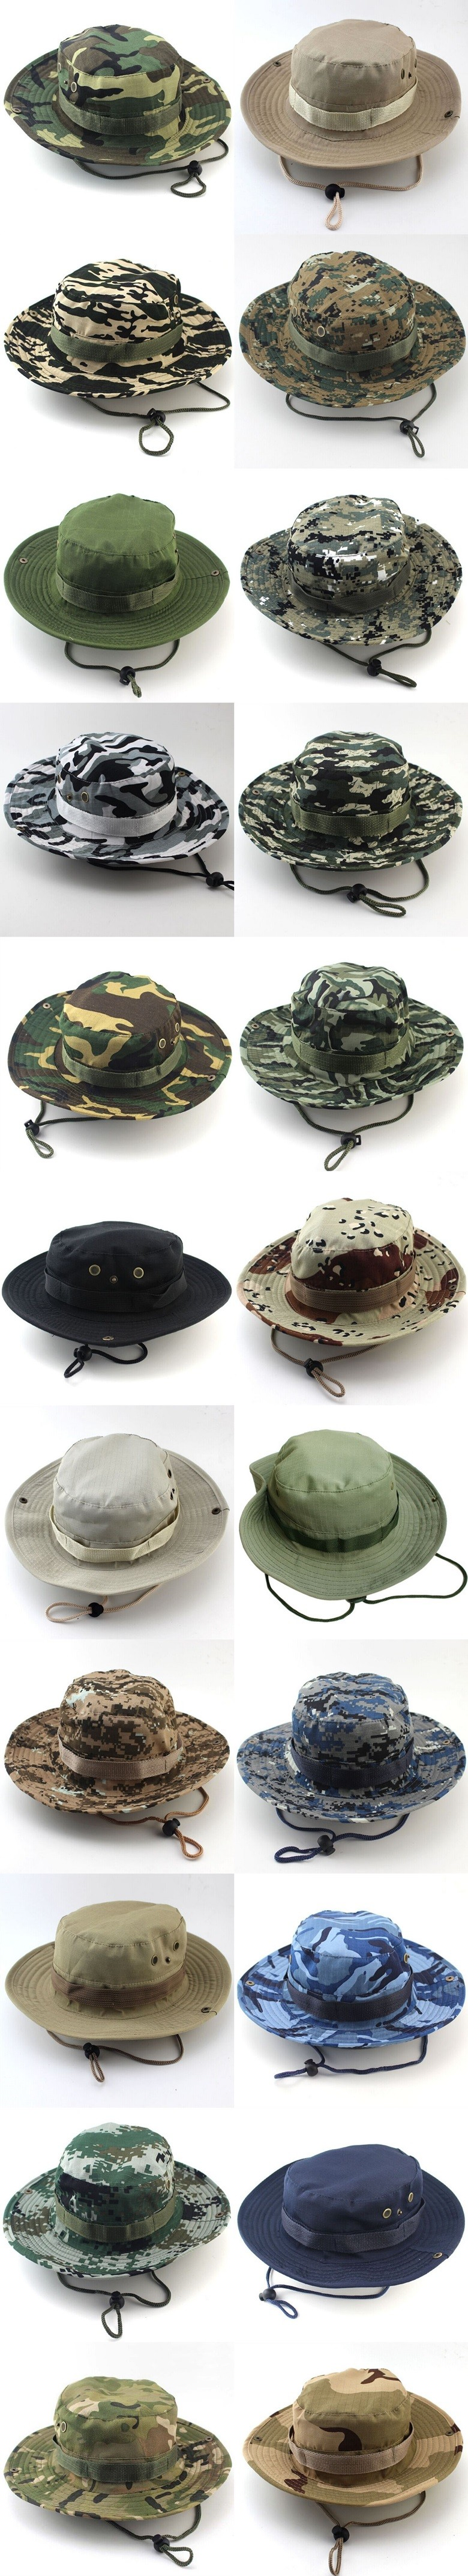 Classic US Combat Army Style Gi Boonie Bush Jungle Hat Sun Fishing Cap Men Women's Cotton Ripstop Camouflage Military Bucket Hat 8